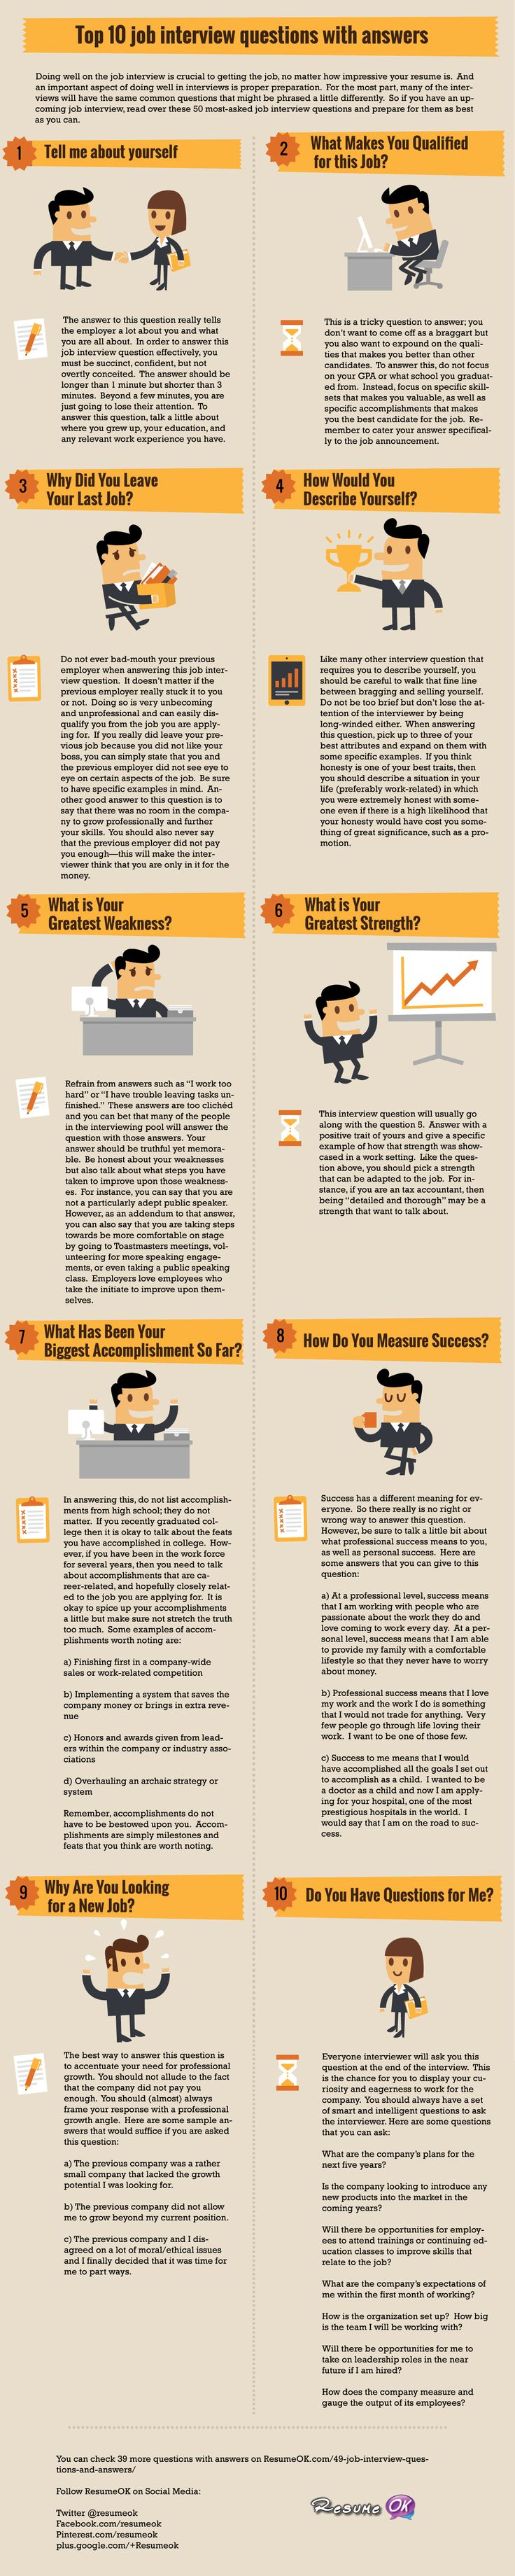 CATEGORIES  Career advice Cover letter Get a job Guest Authors Job interview tips Others Productivity at work Resume writing tips Write a resume    50 Job Interview Questions and Answers [Infographic] Felix - April 16, 2013 - Job interview tips TWEET LIKE IT GOOGLE + LINKEDIN PINTEREST   Doing well on the job interview is crucial to getting the job, no matter how impressive your resume is.  And an important aspect of doing well in interviews is proper preparation.  For the most part, many of…